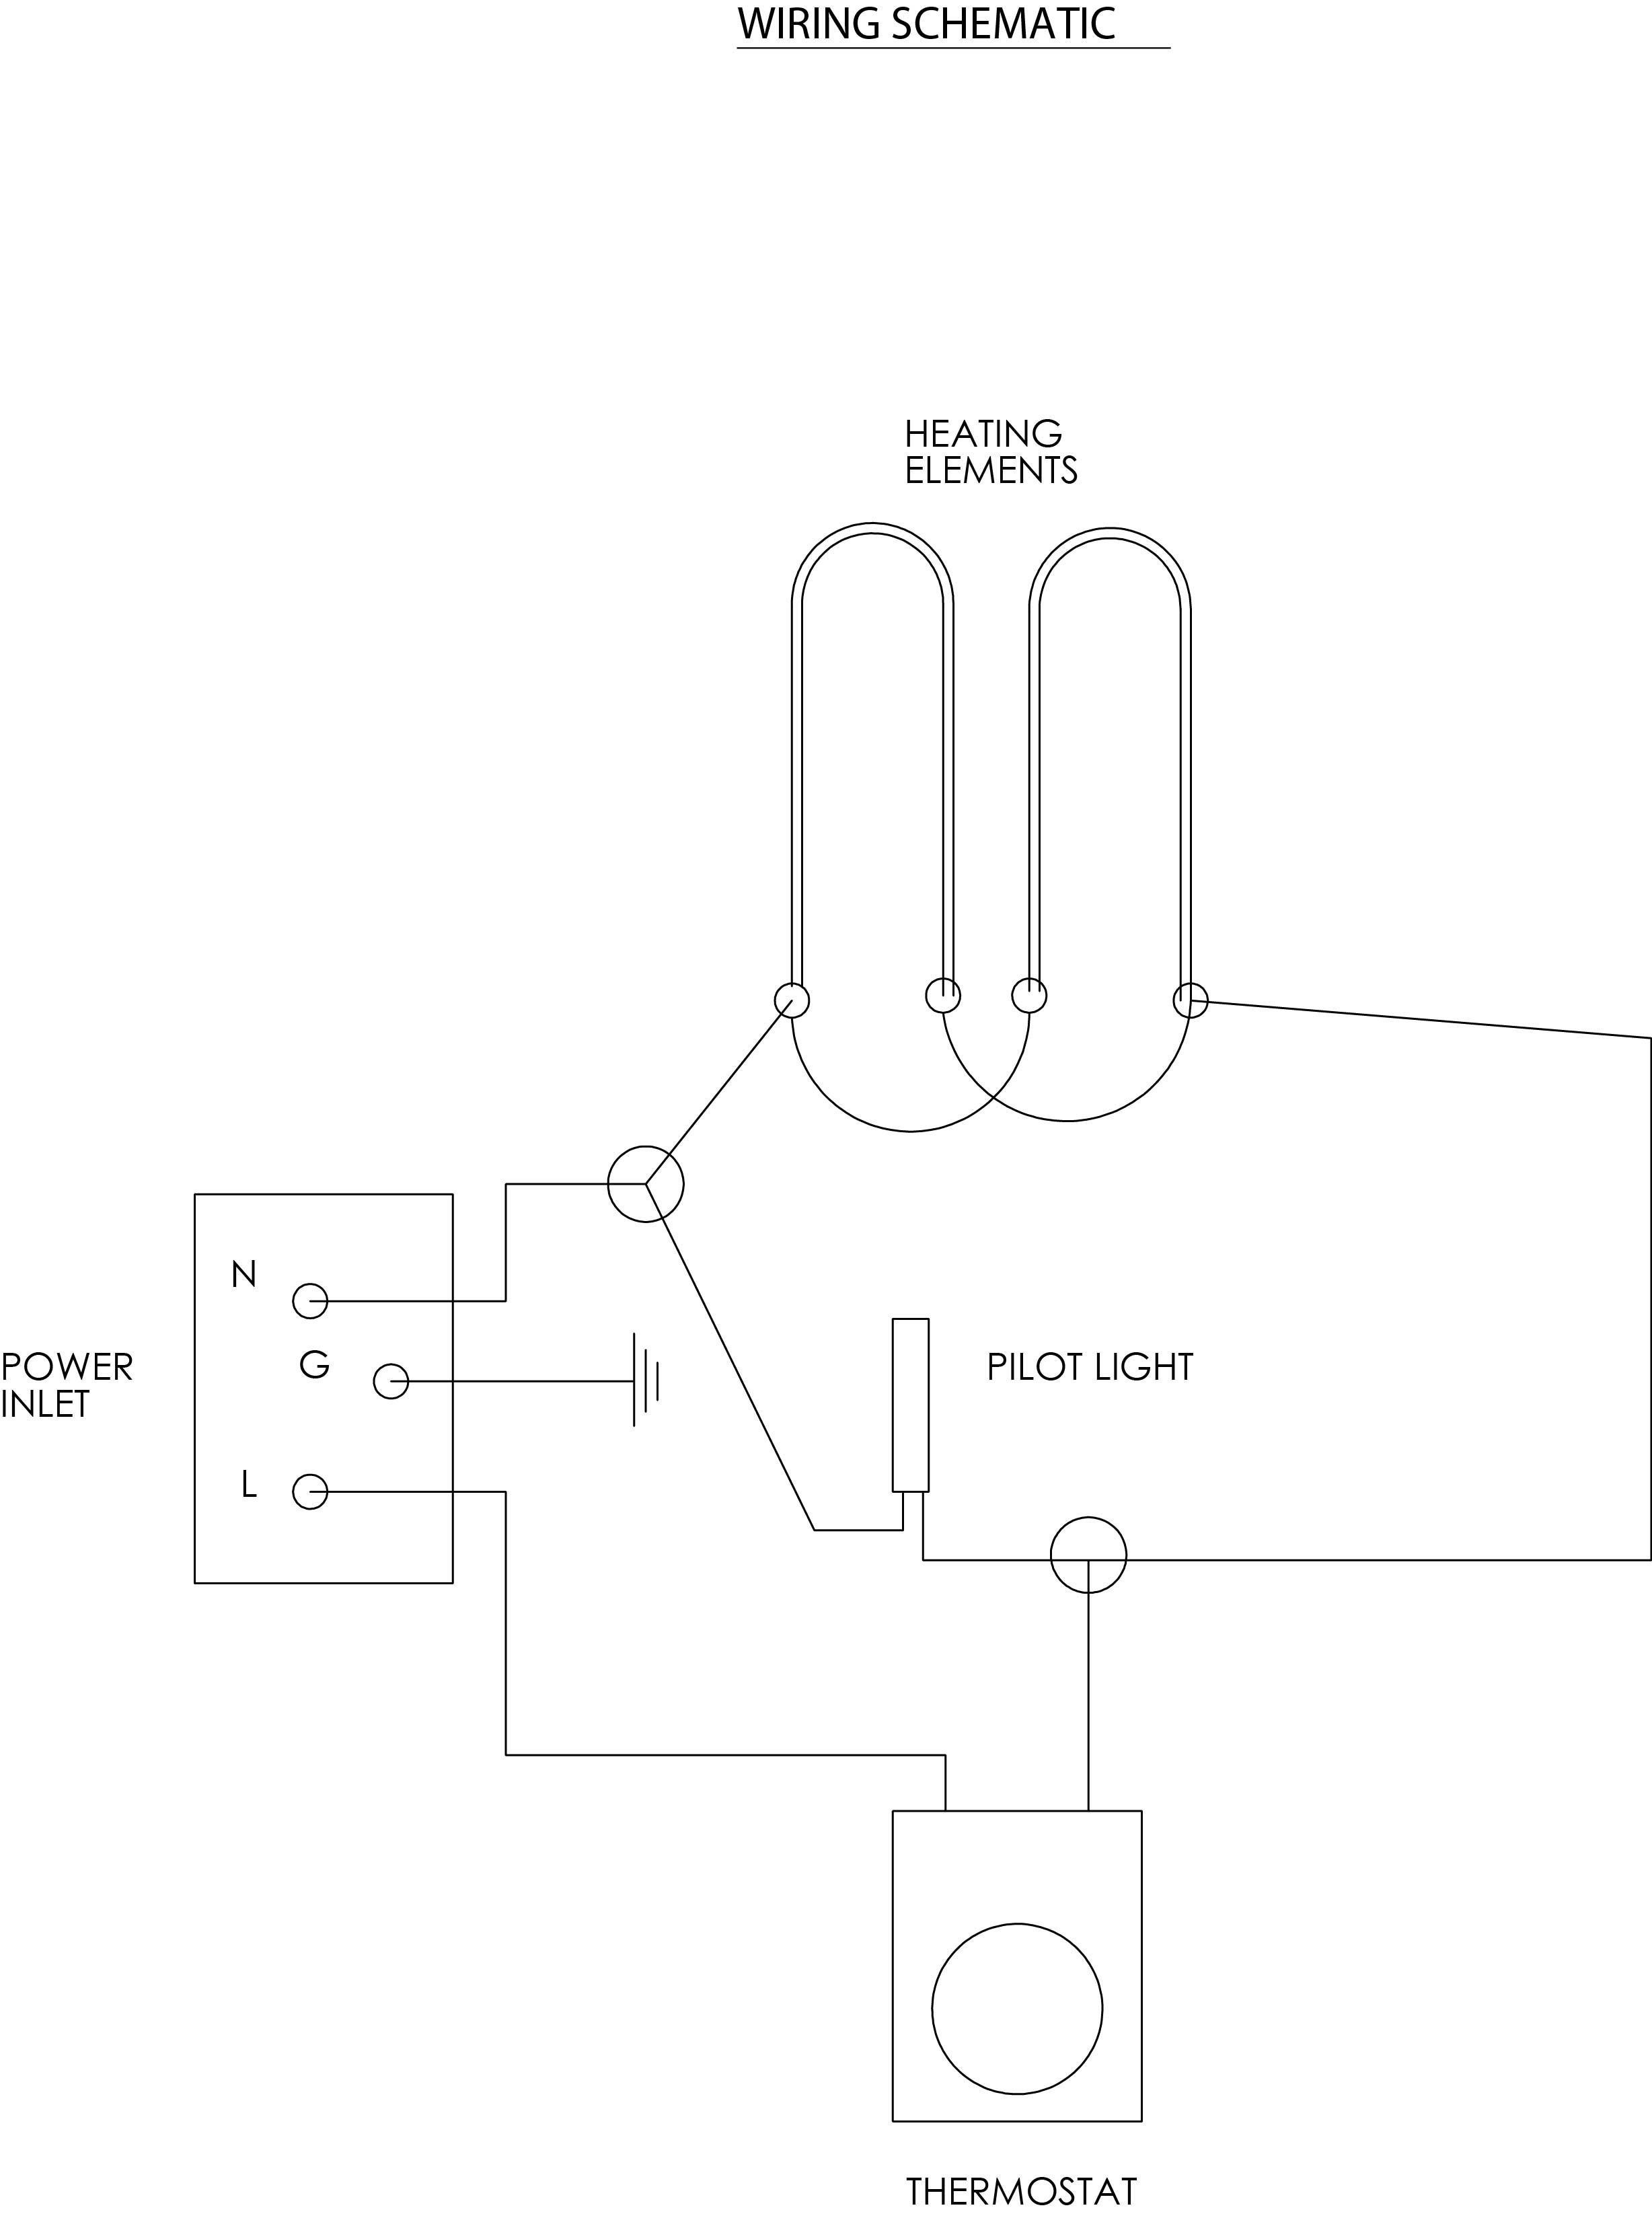 120 volt electrical relay wiring diagram